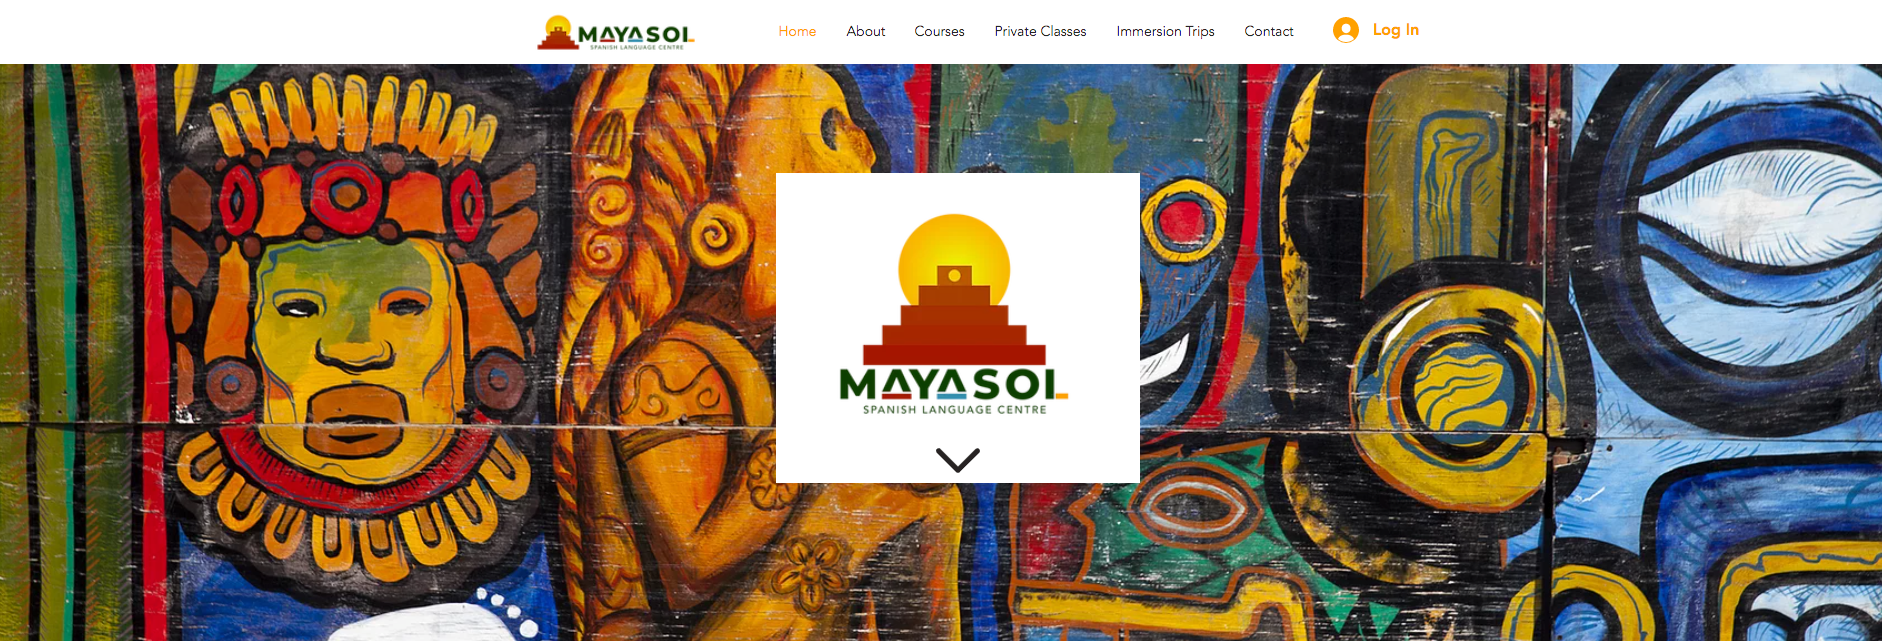 Mayasol Spanish Language Centre